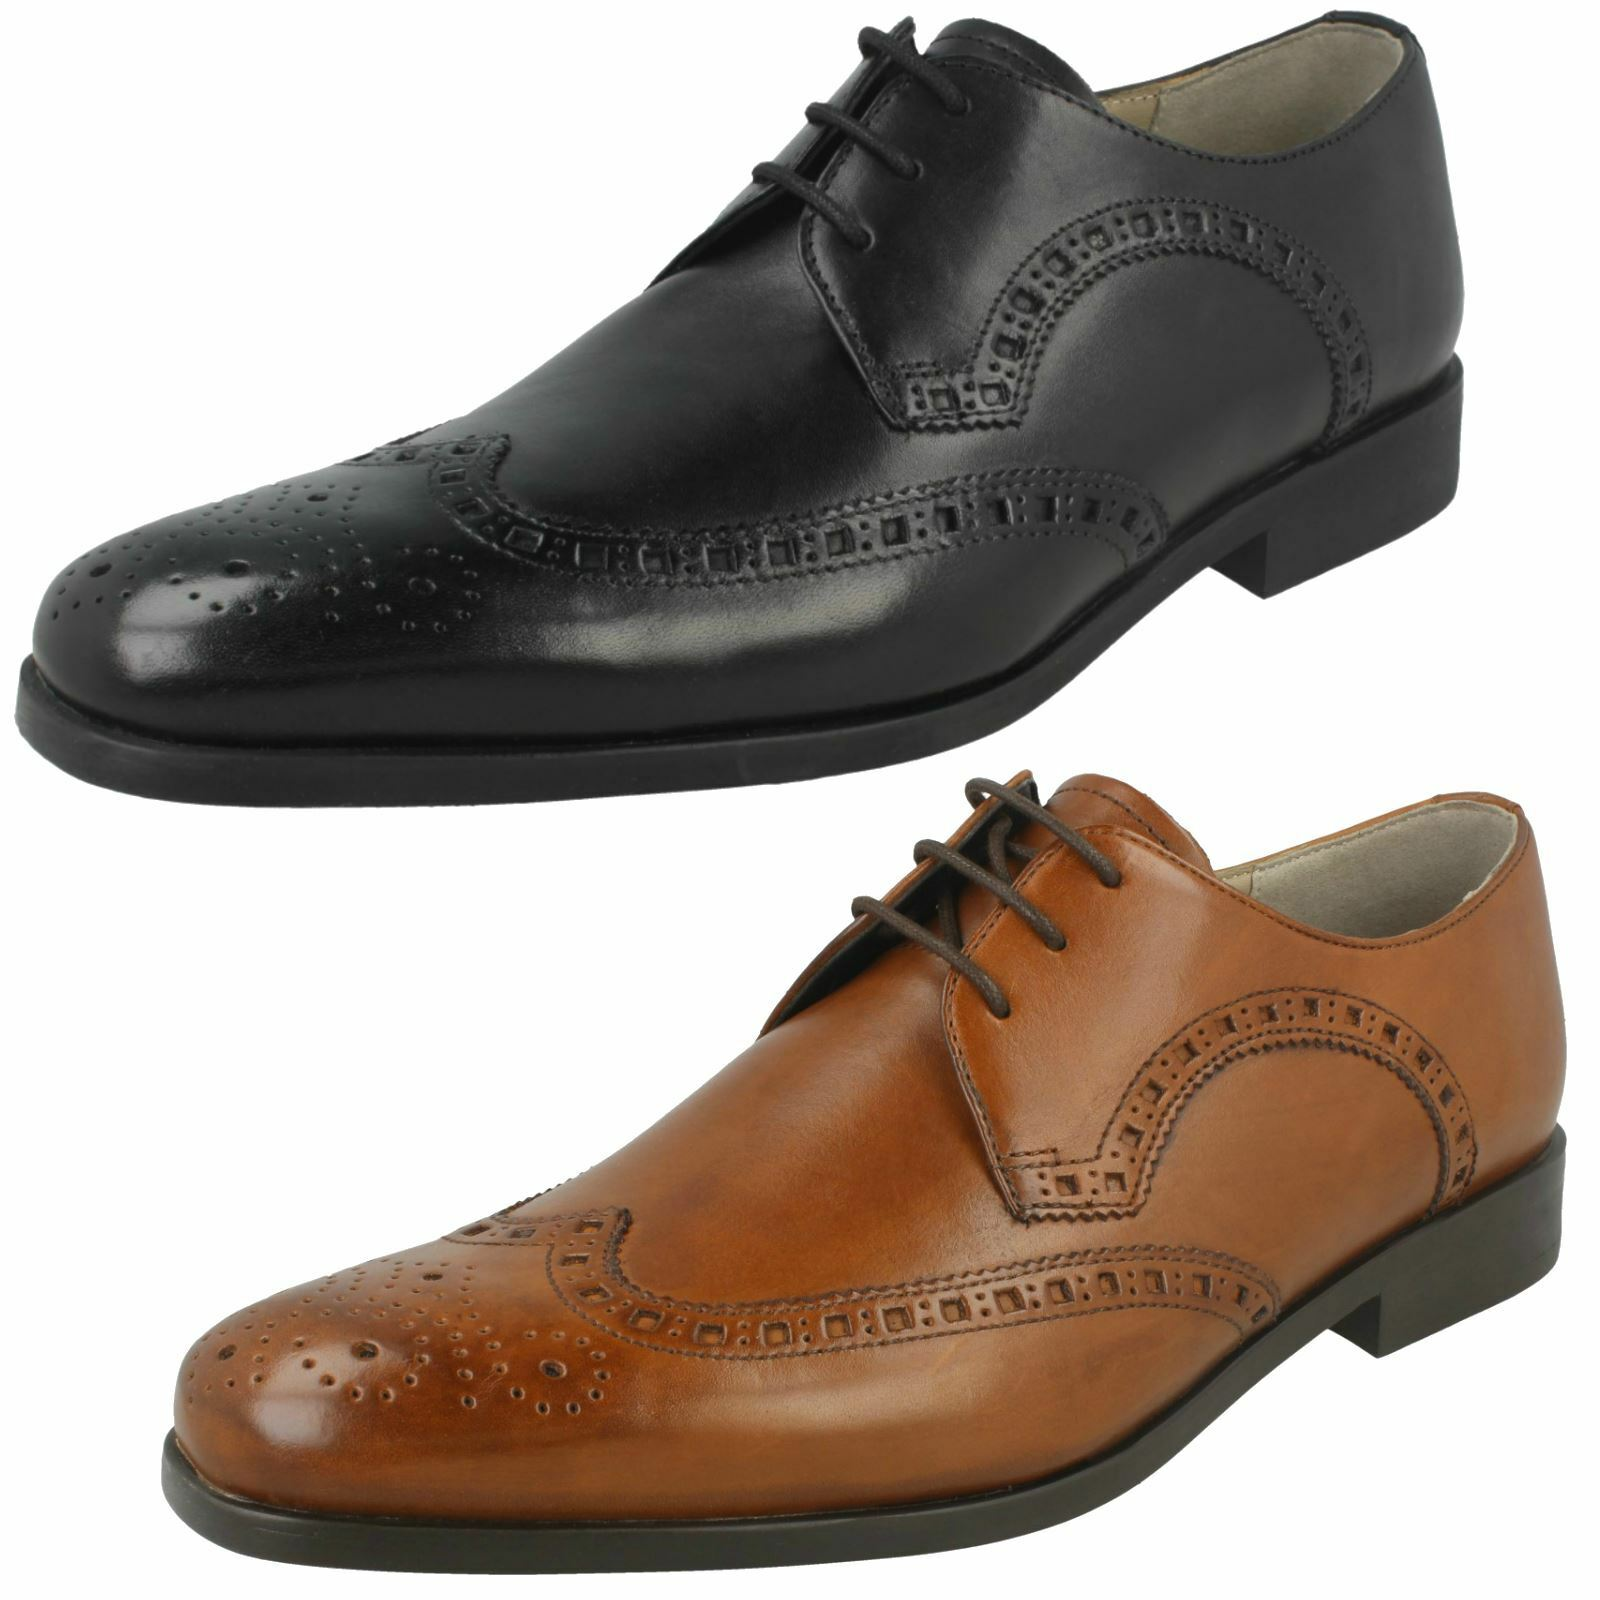 Mens Clarks Formal Brogues - Amieson Limit